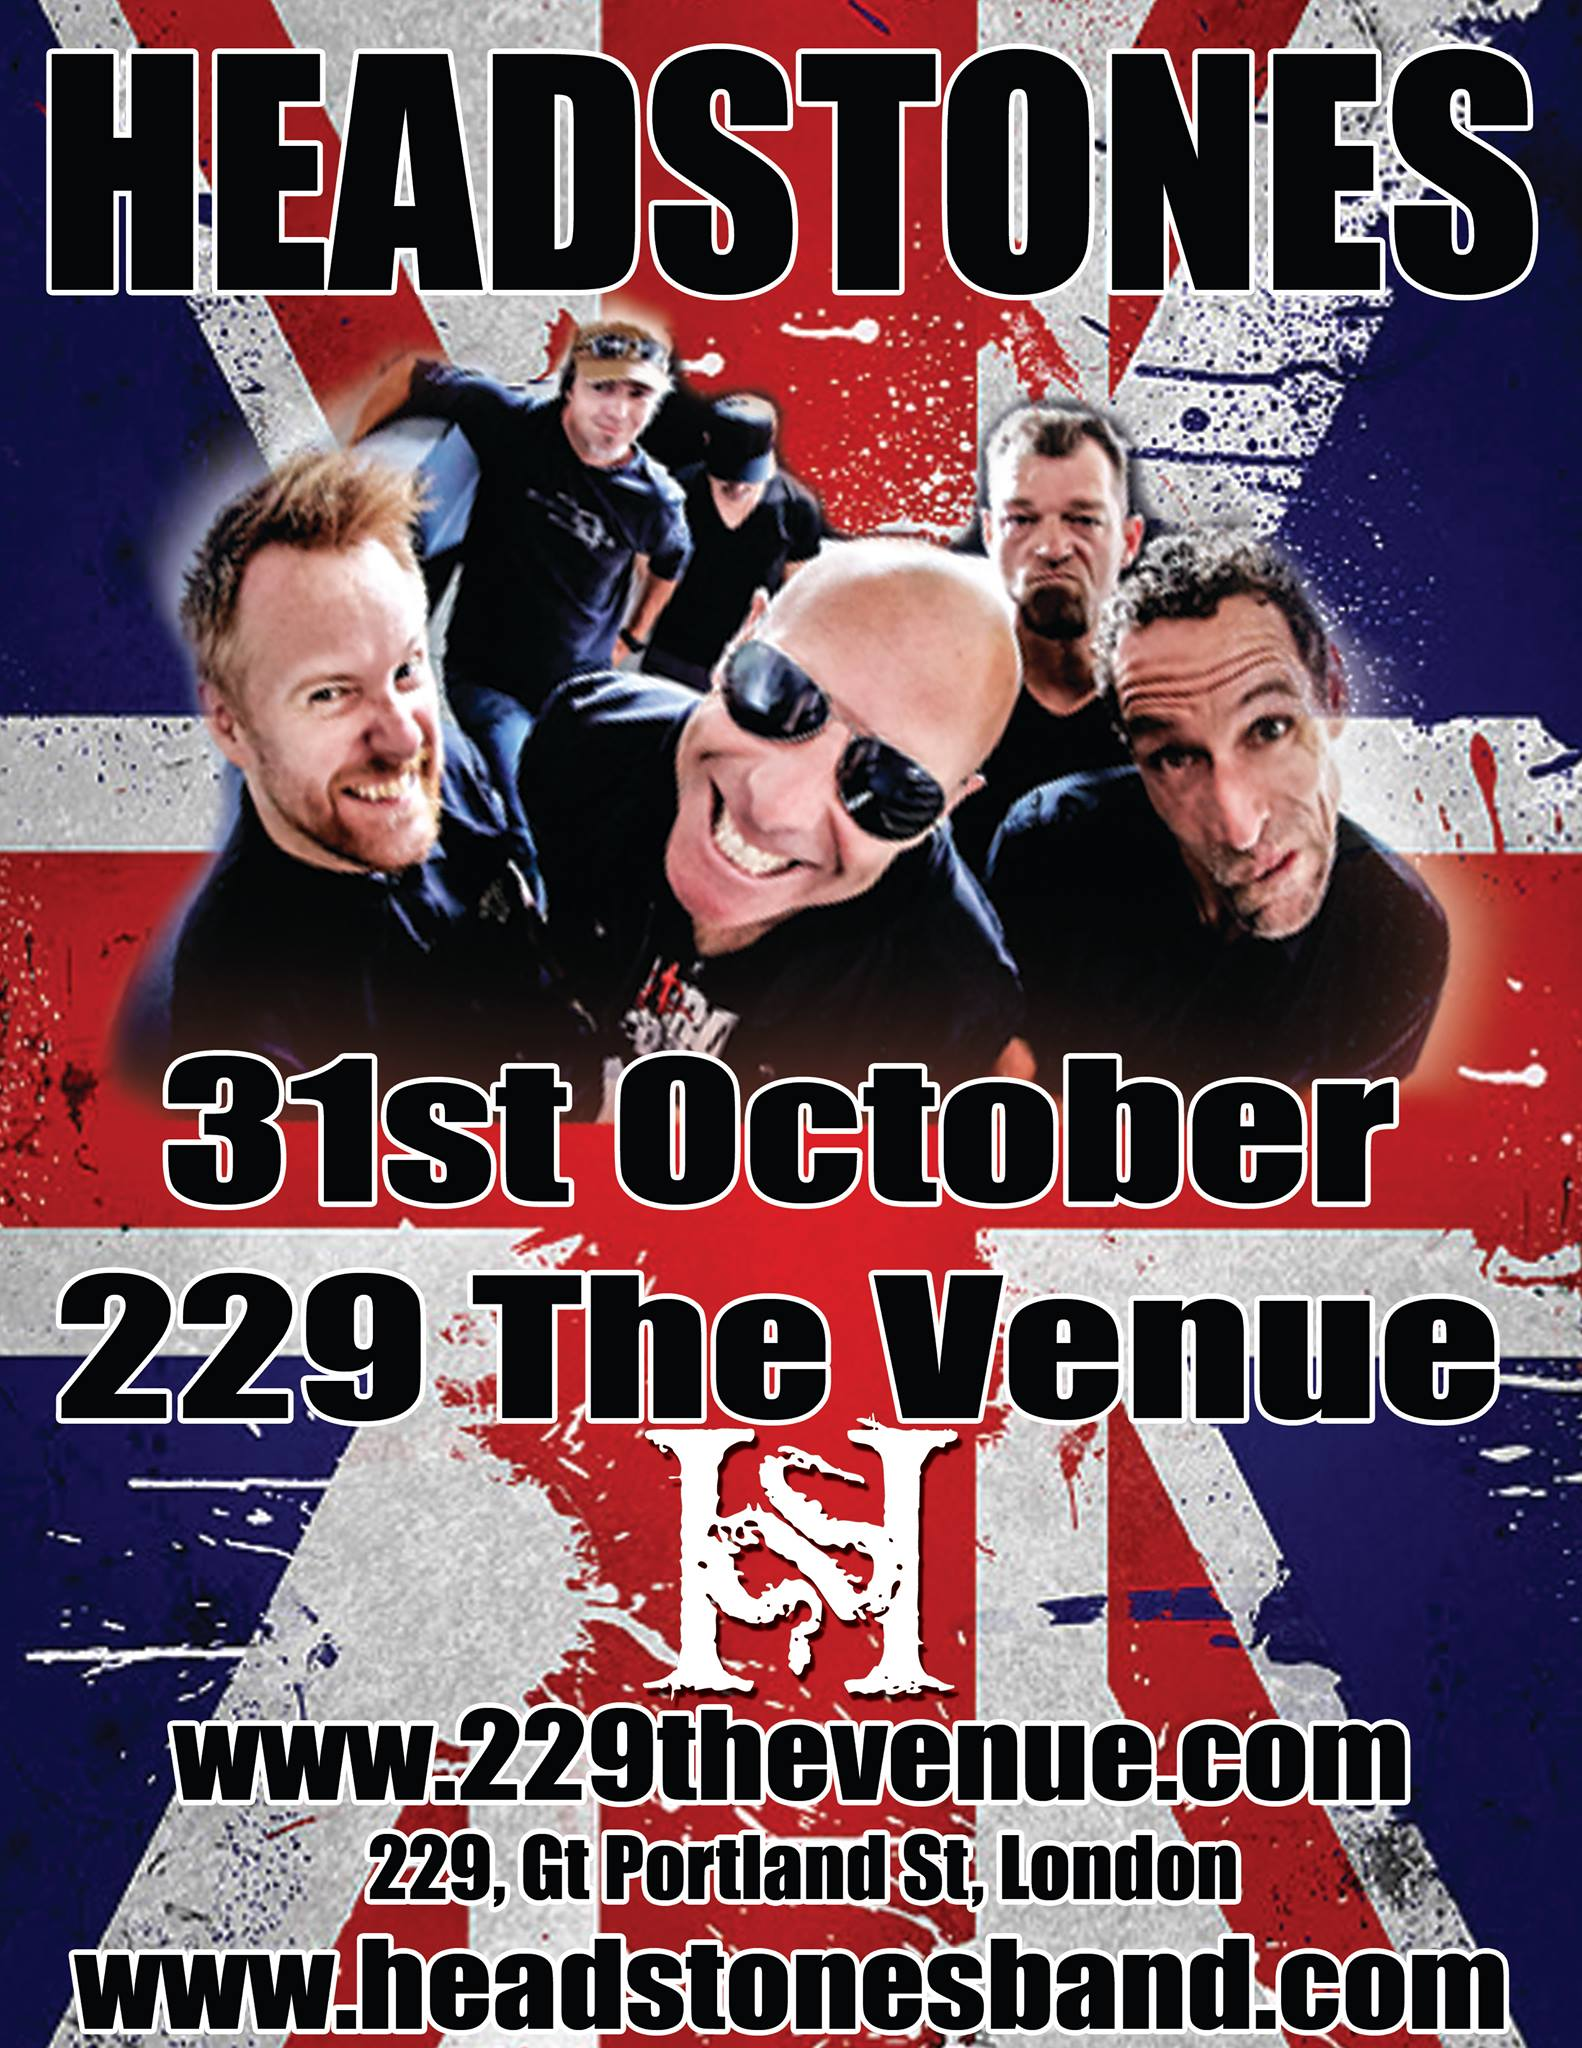 HEADSTONES TOUR POSTER - UK 2016